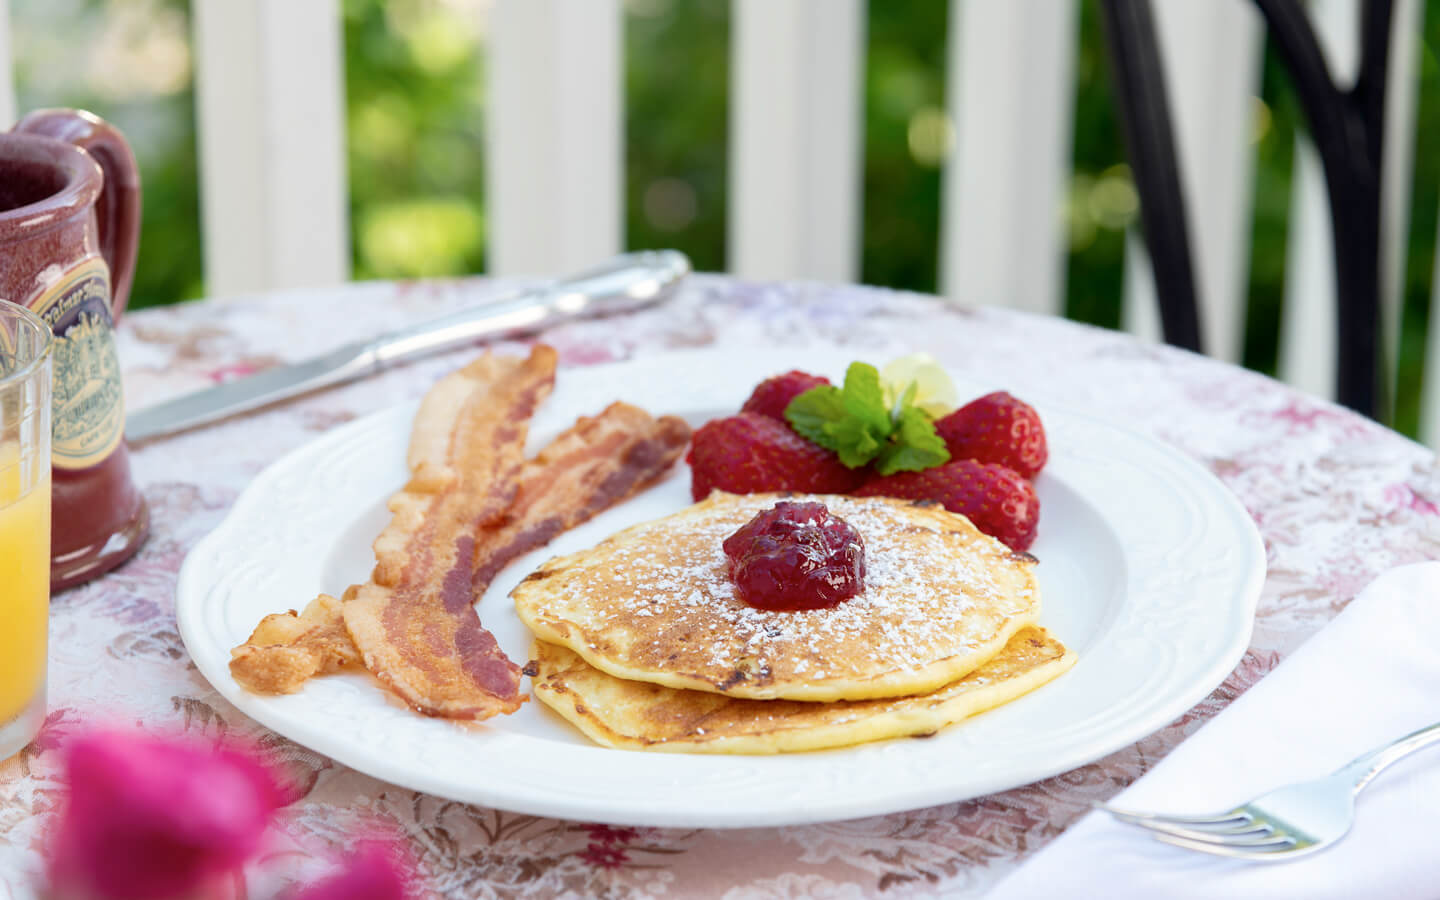 Delicious breakfast of pancakes, bacon and fruit